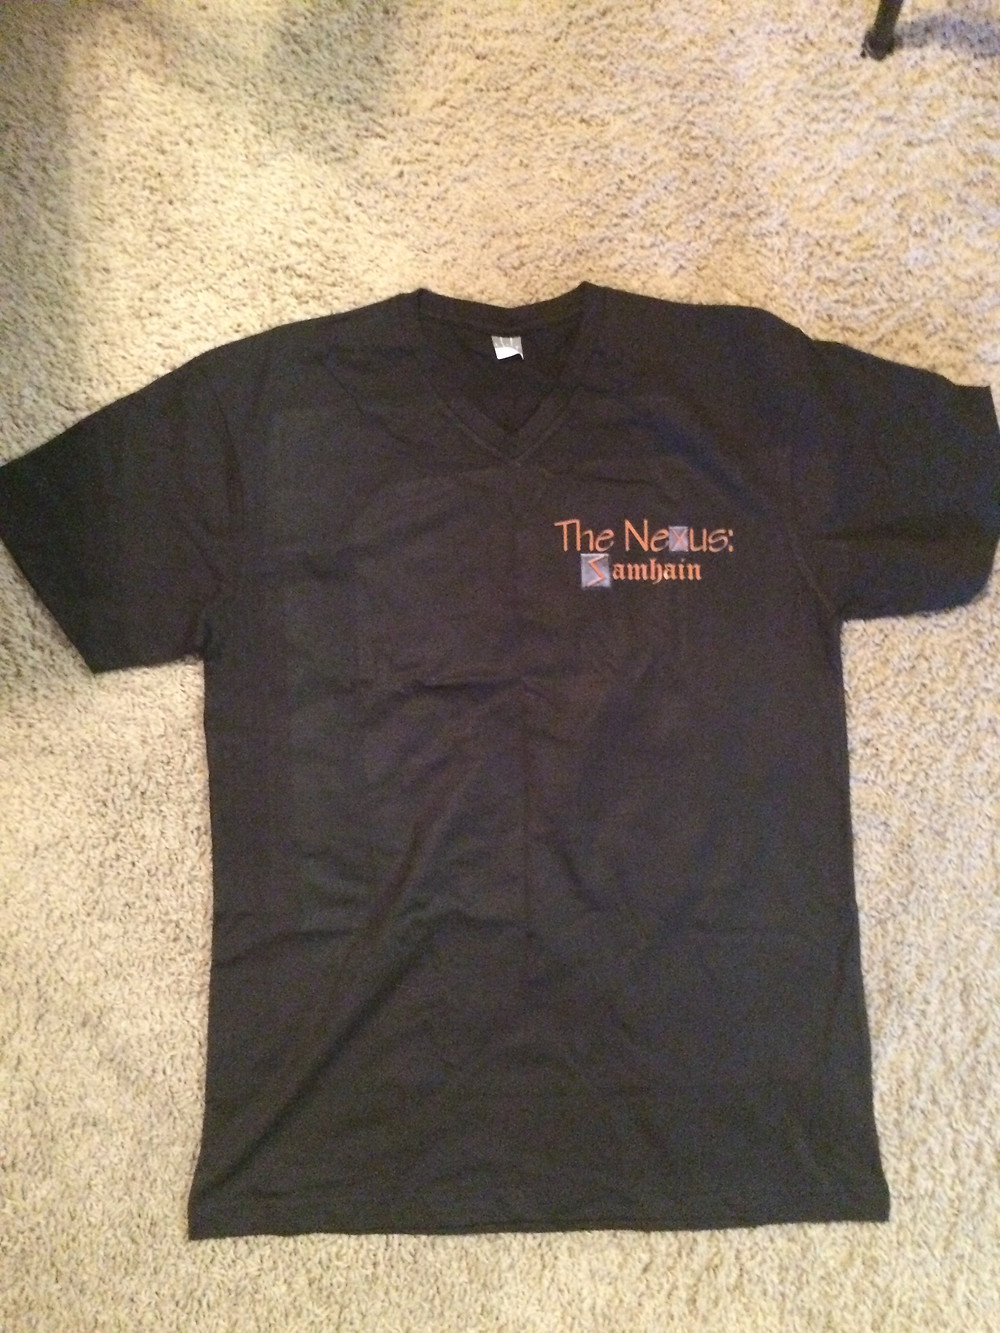 Front of the T-shirt